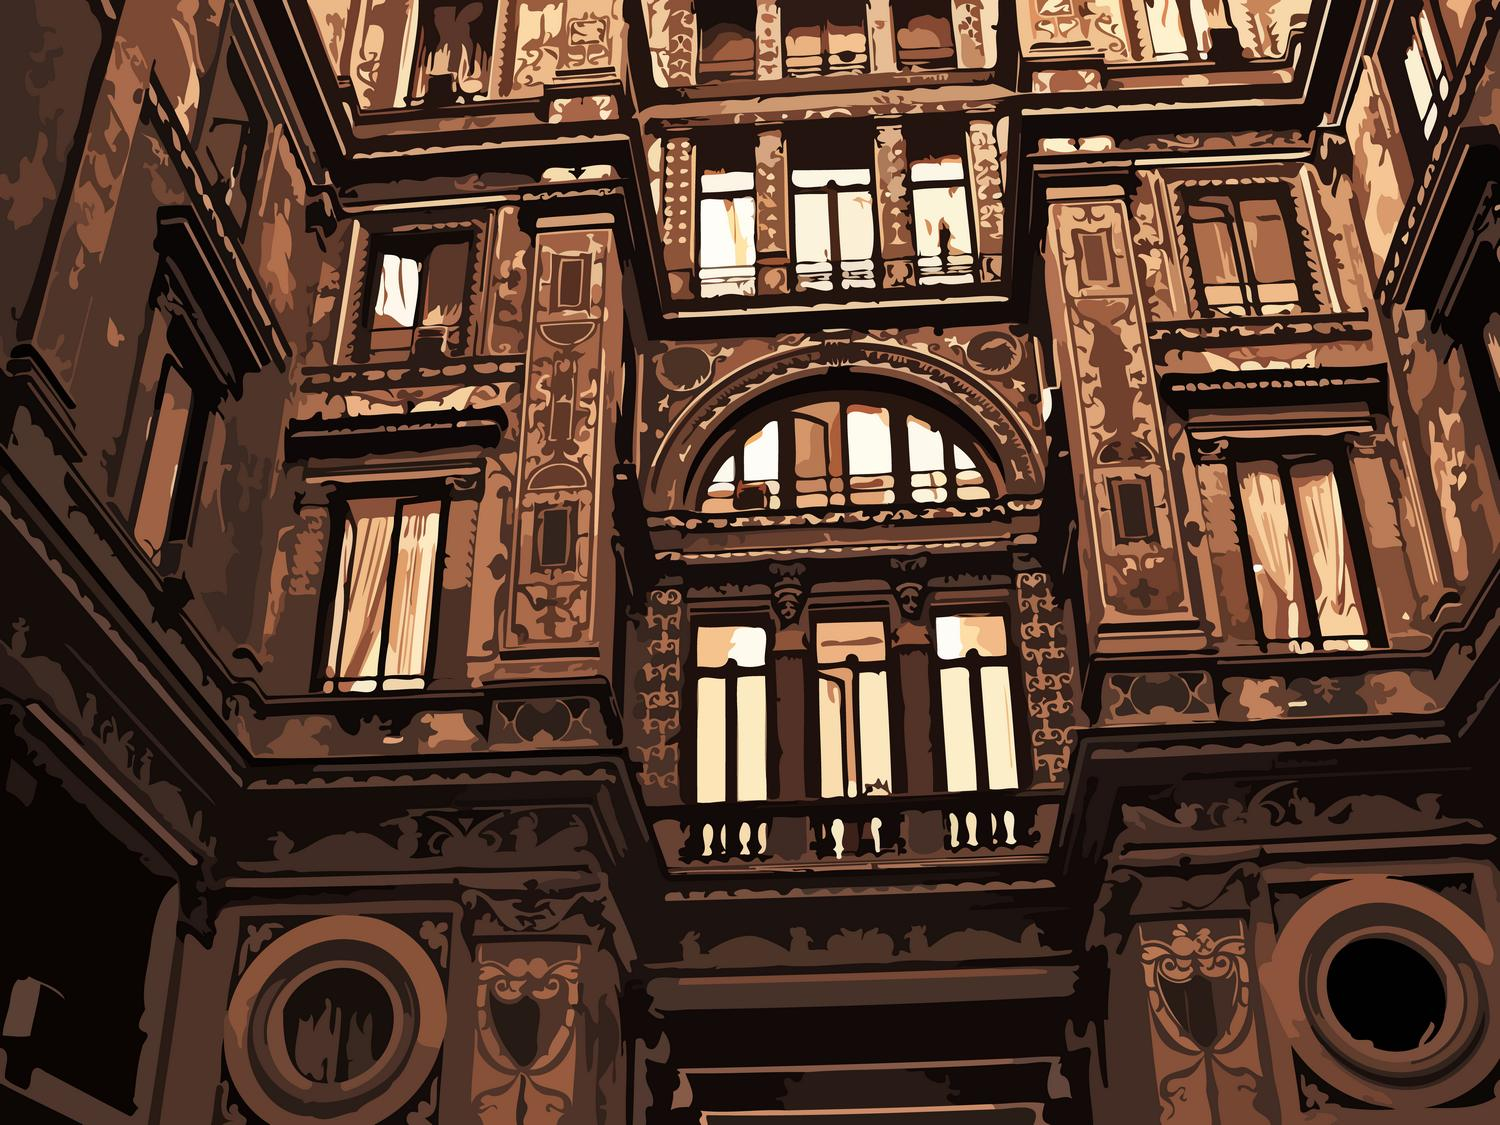 Courtyard in Rome. Building's detail are highlighted in rich tones of brown and copper. - Roman elegance - Techno-Impressionist Museum - Techno-Impressionism - art - beautiful - photo photography picture - by Tony Karp